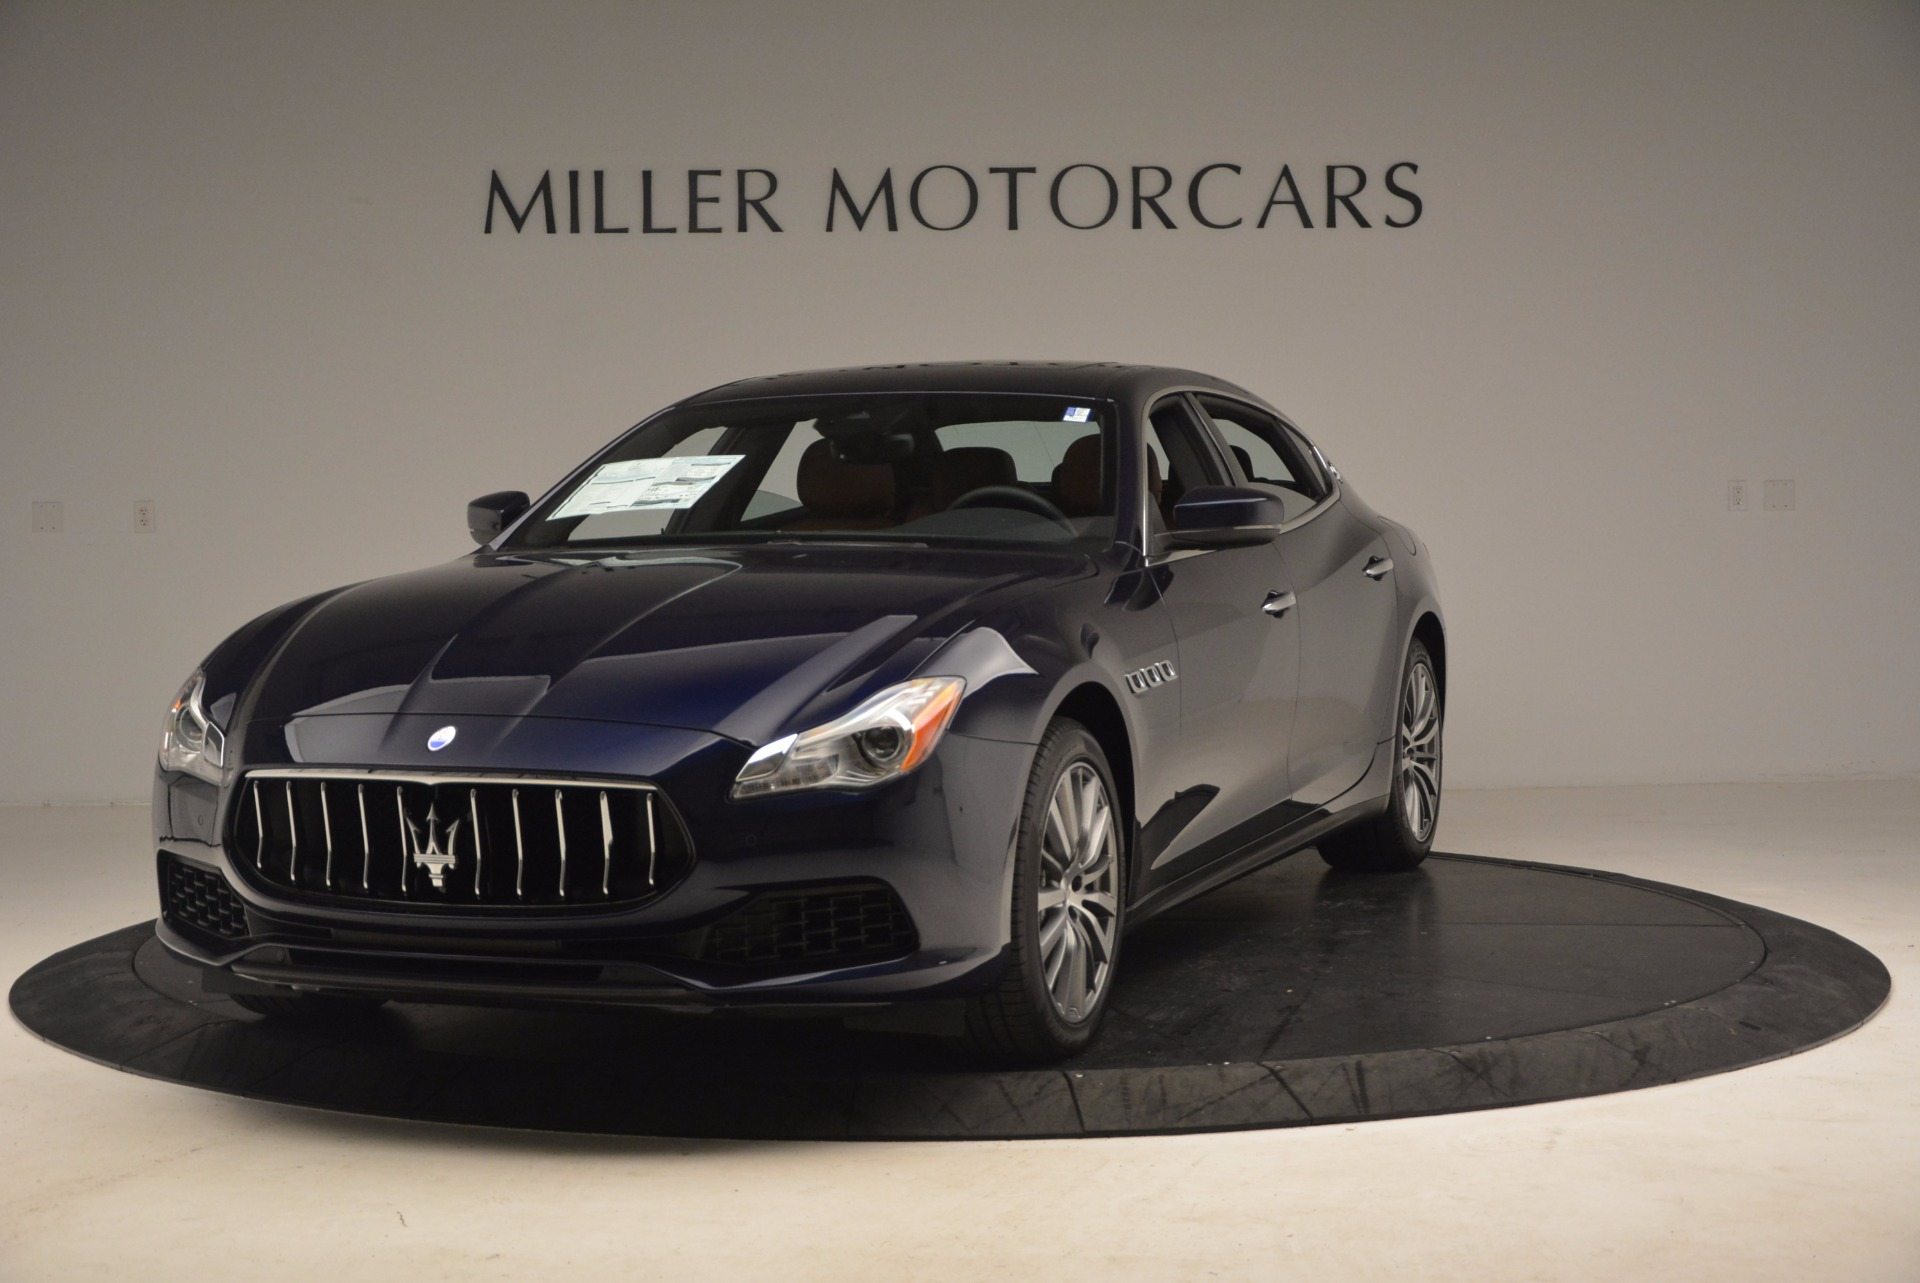 New 2017 Maserati Quattroporte S Q4 for sale Sold at McLaren Greenwich in Greenwich CT 06830 1